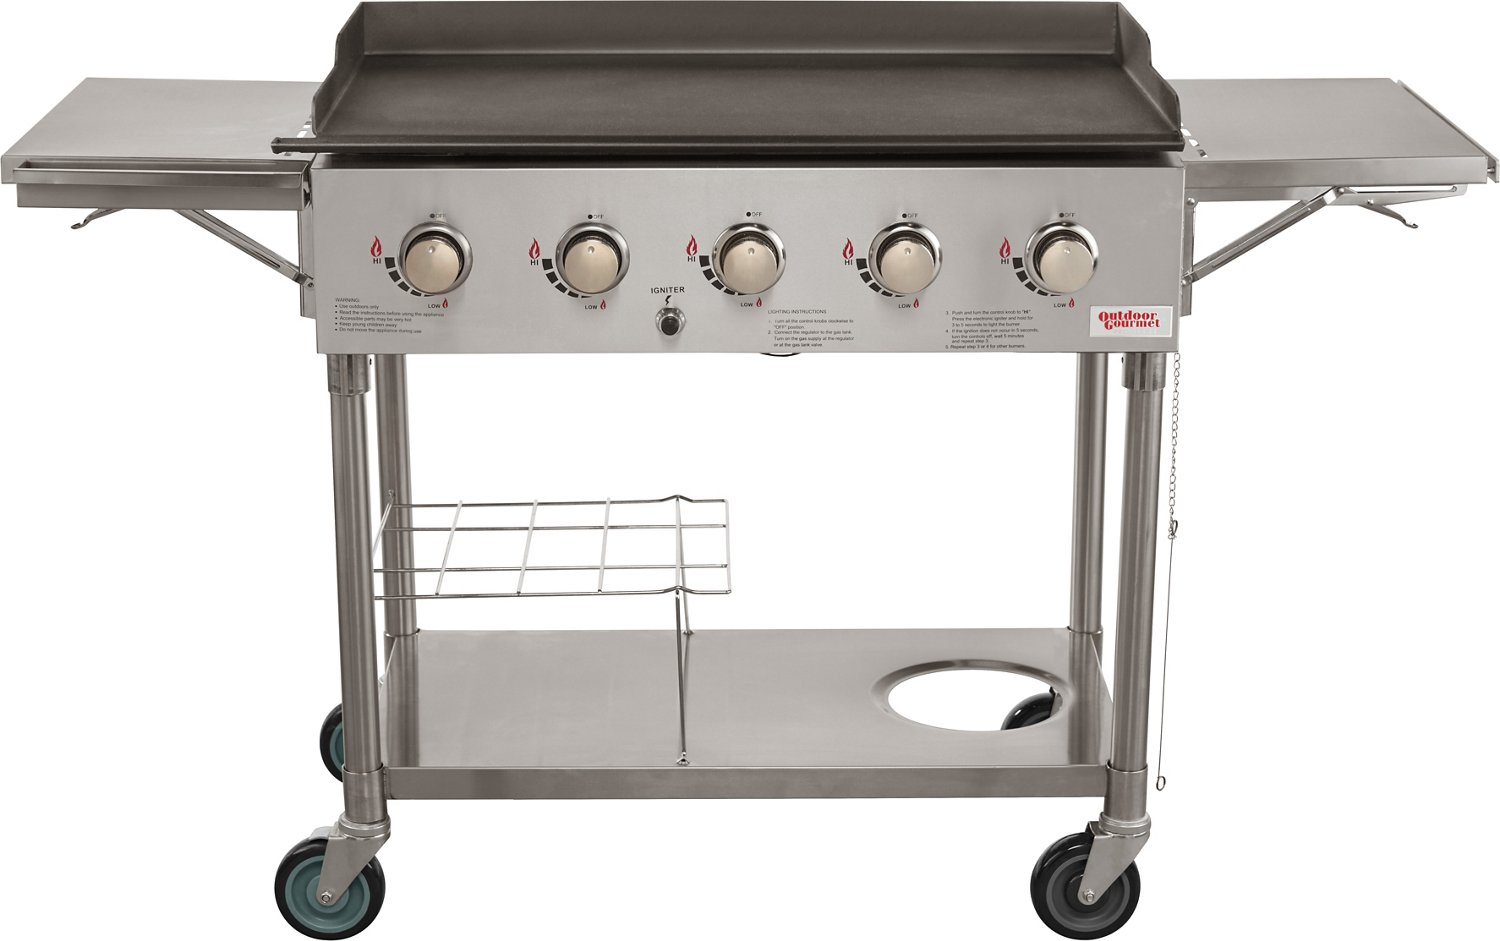 Bbqs For Sale Melbourne Grills Char Boil Grills Coleman Grills Outdoor Gourmet Grills